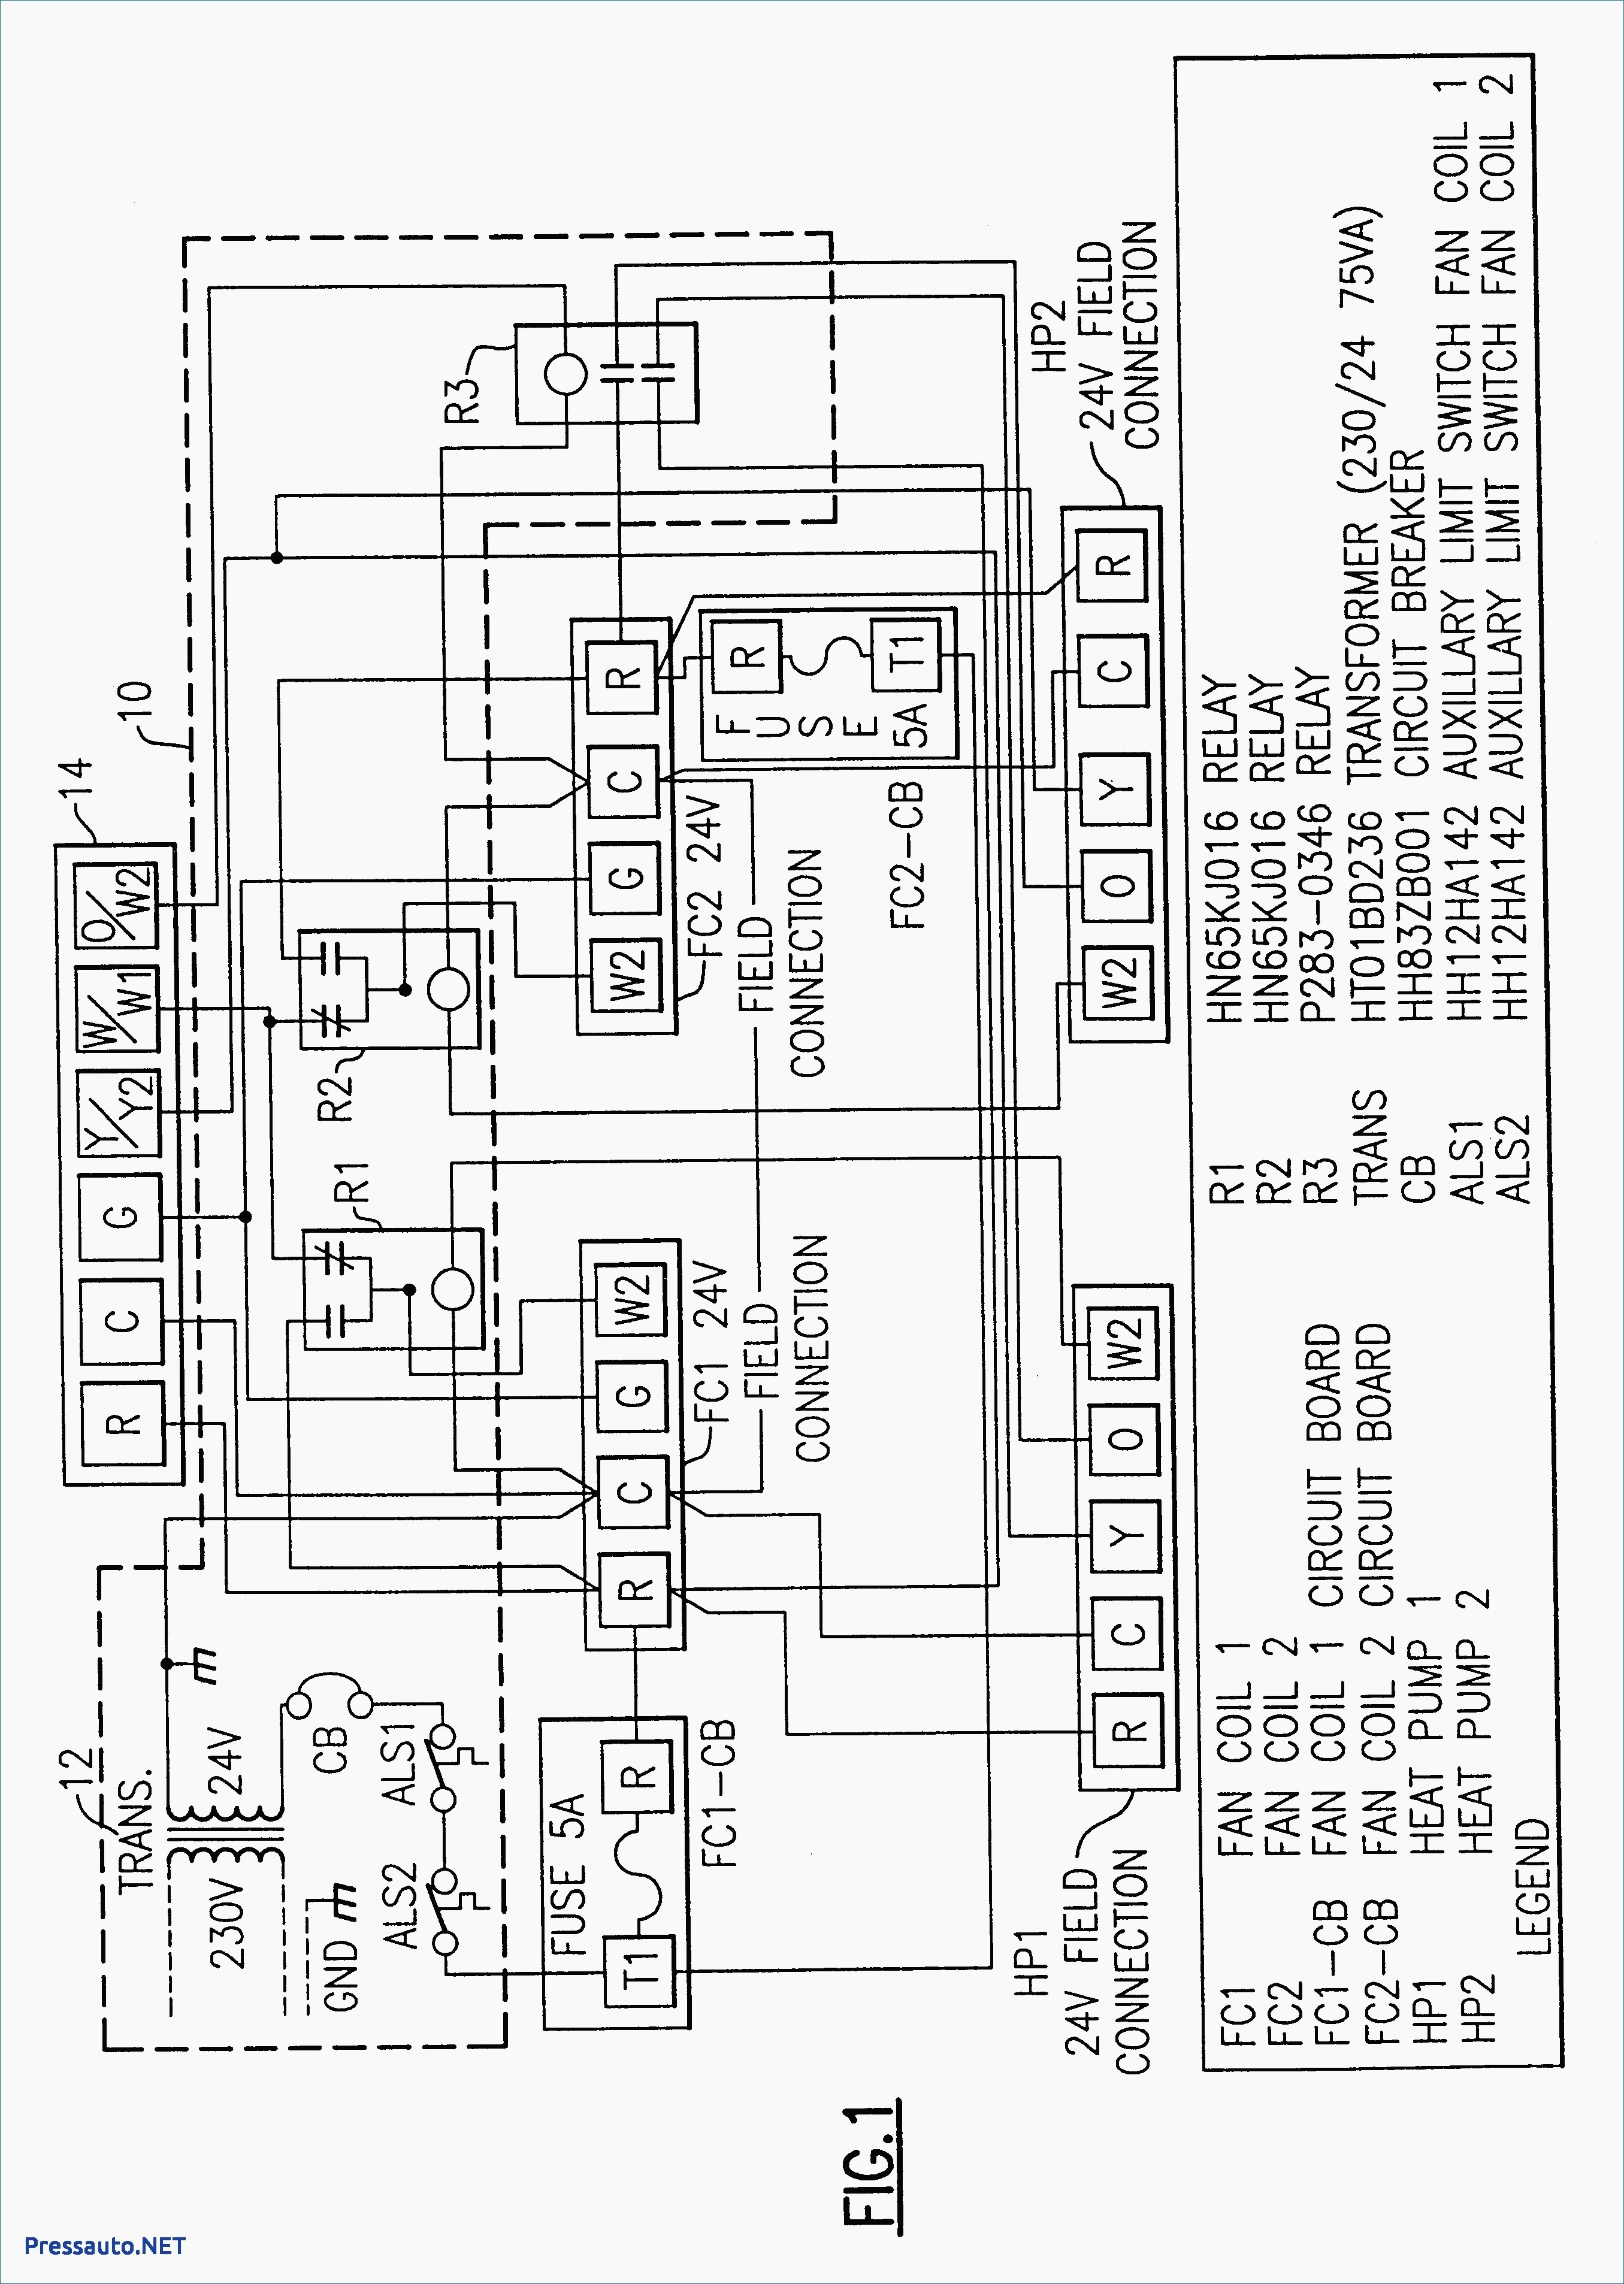 York Ac Wiring Diagram - Engine Mechanical Components Old York Air Conditioner Wiring Diagrams on